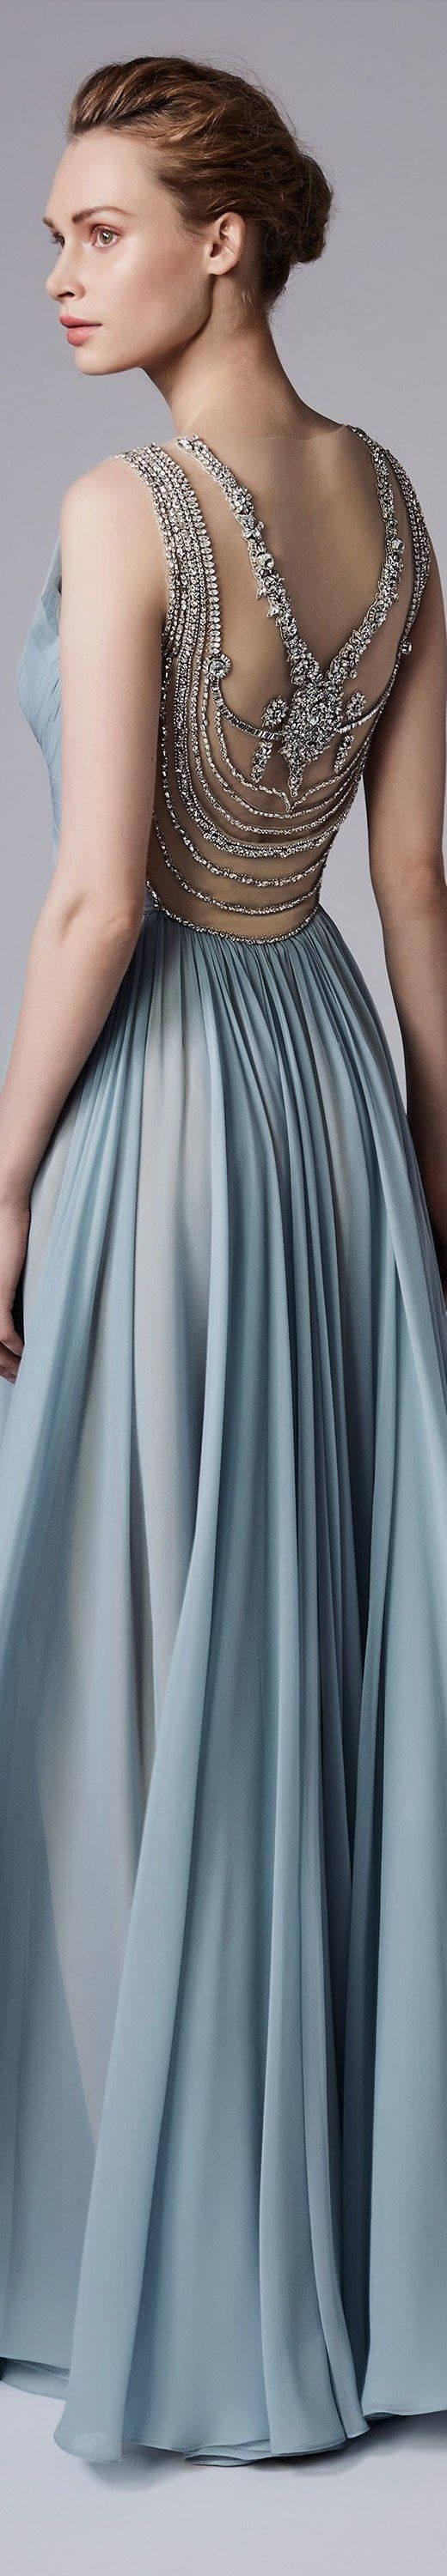 244 best abiye elbiseler evening dresses images on Pinterest ...